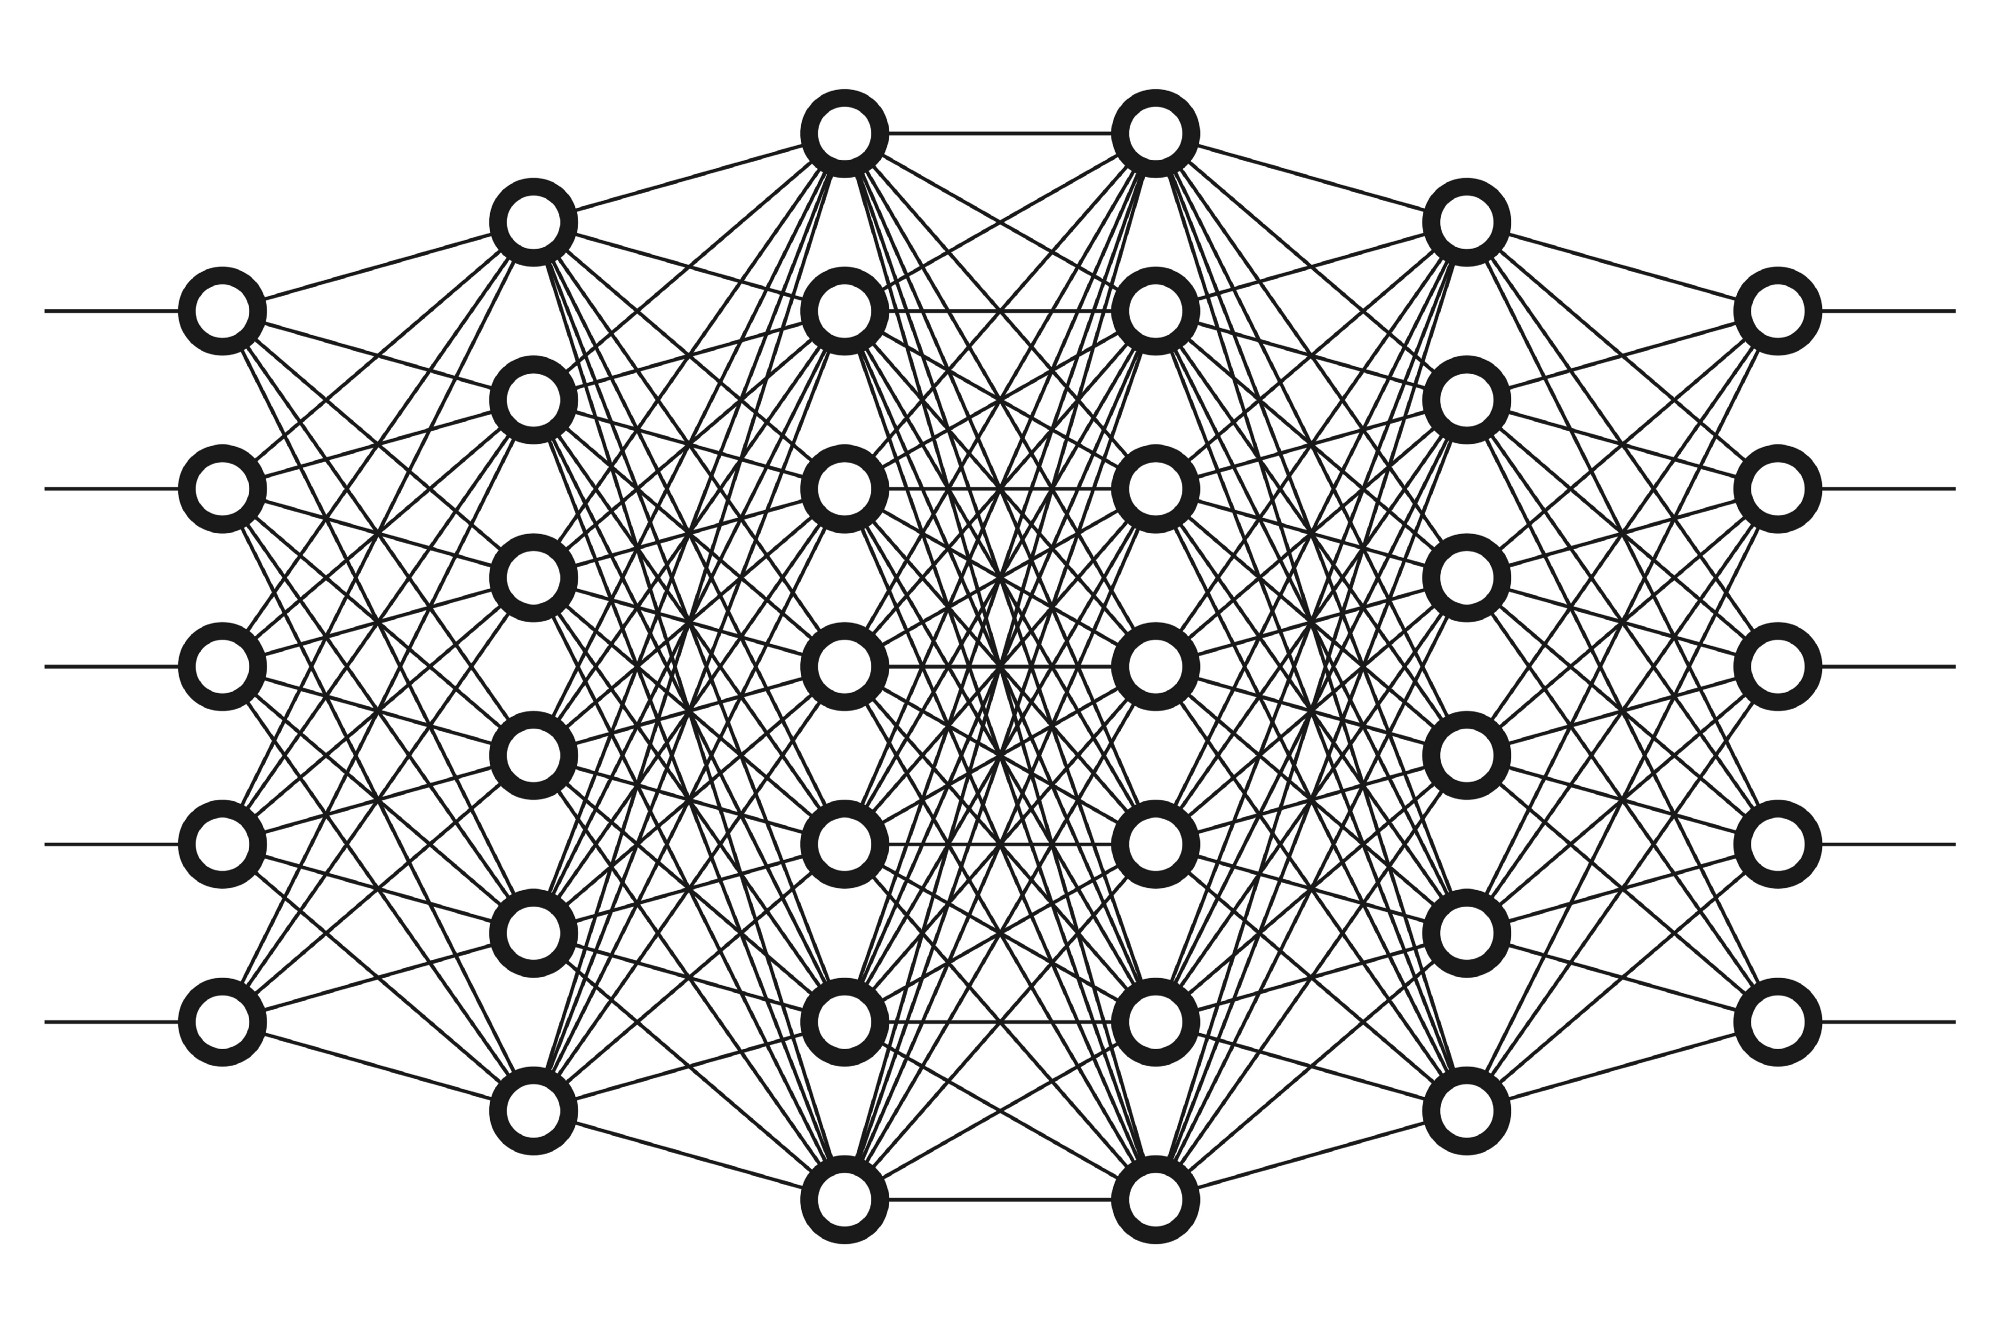 Limitations of Deep Learning for Vision, and How We Might Fix Them